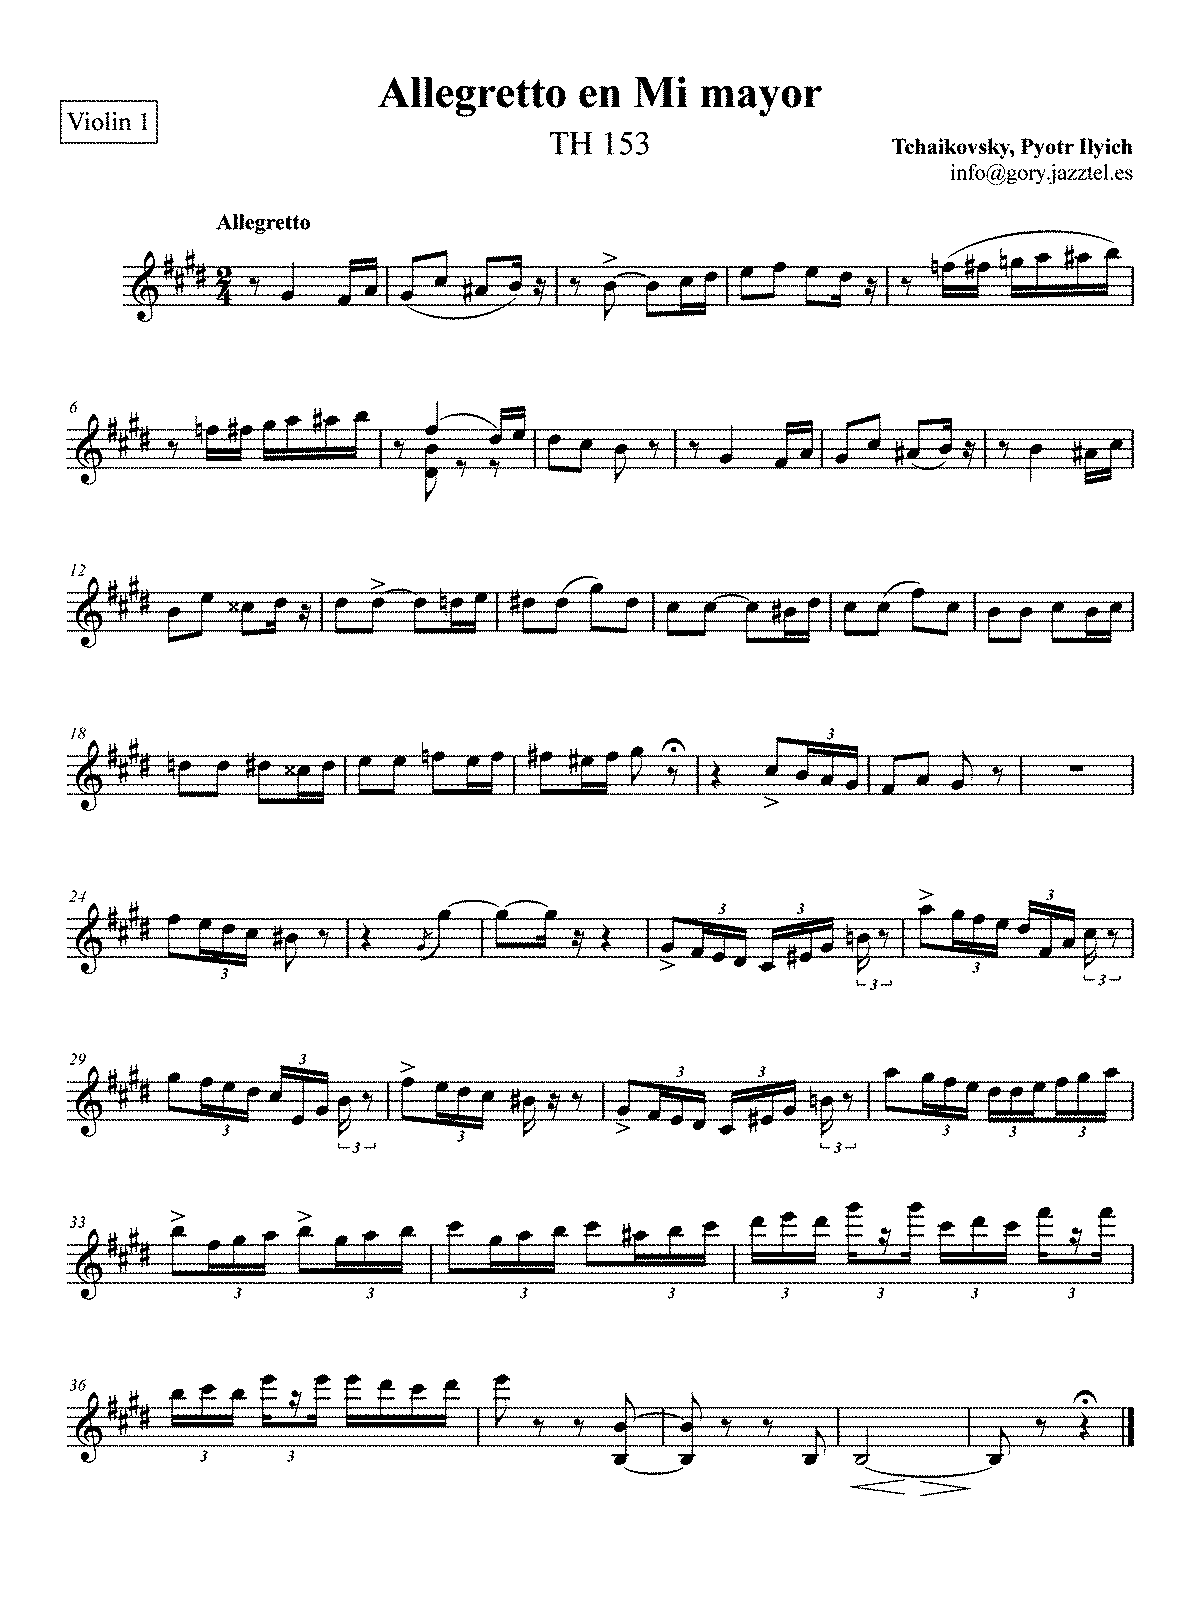 PMLP49114-Allegretto en mi mayor - Violin 1.pdf